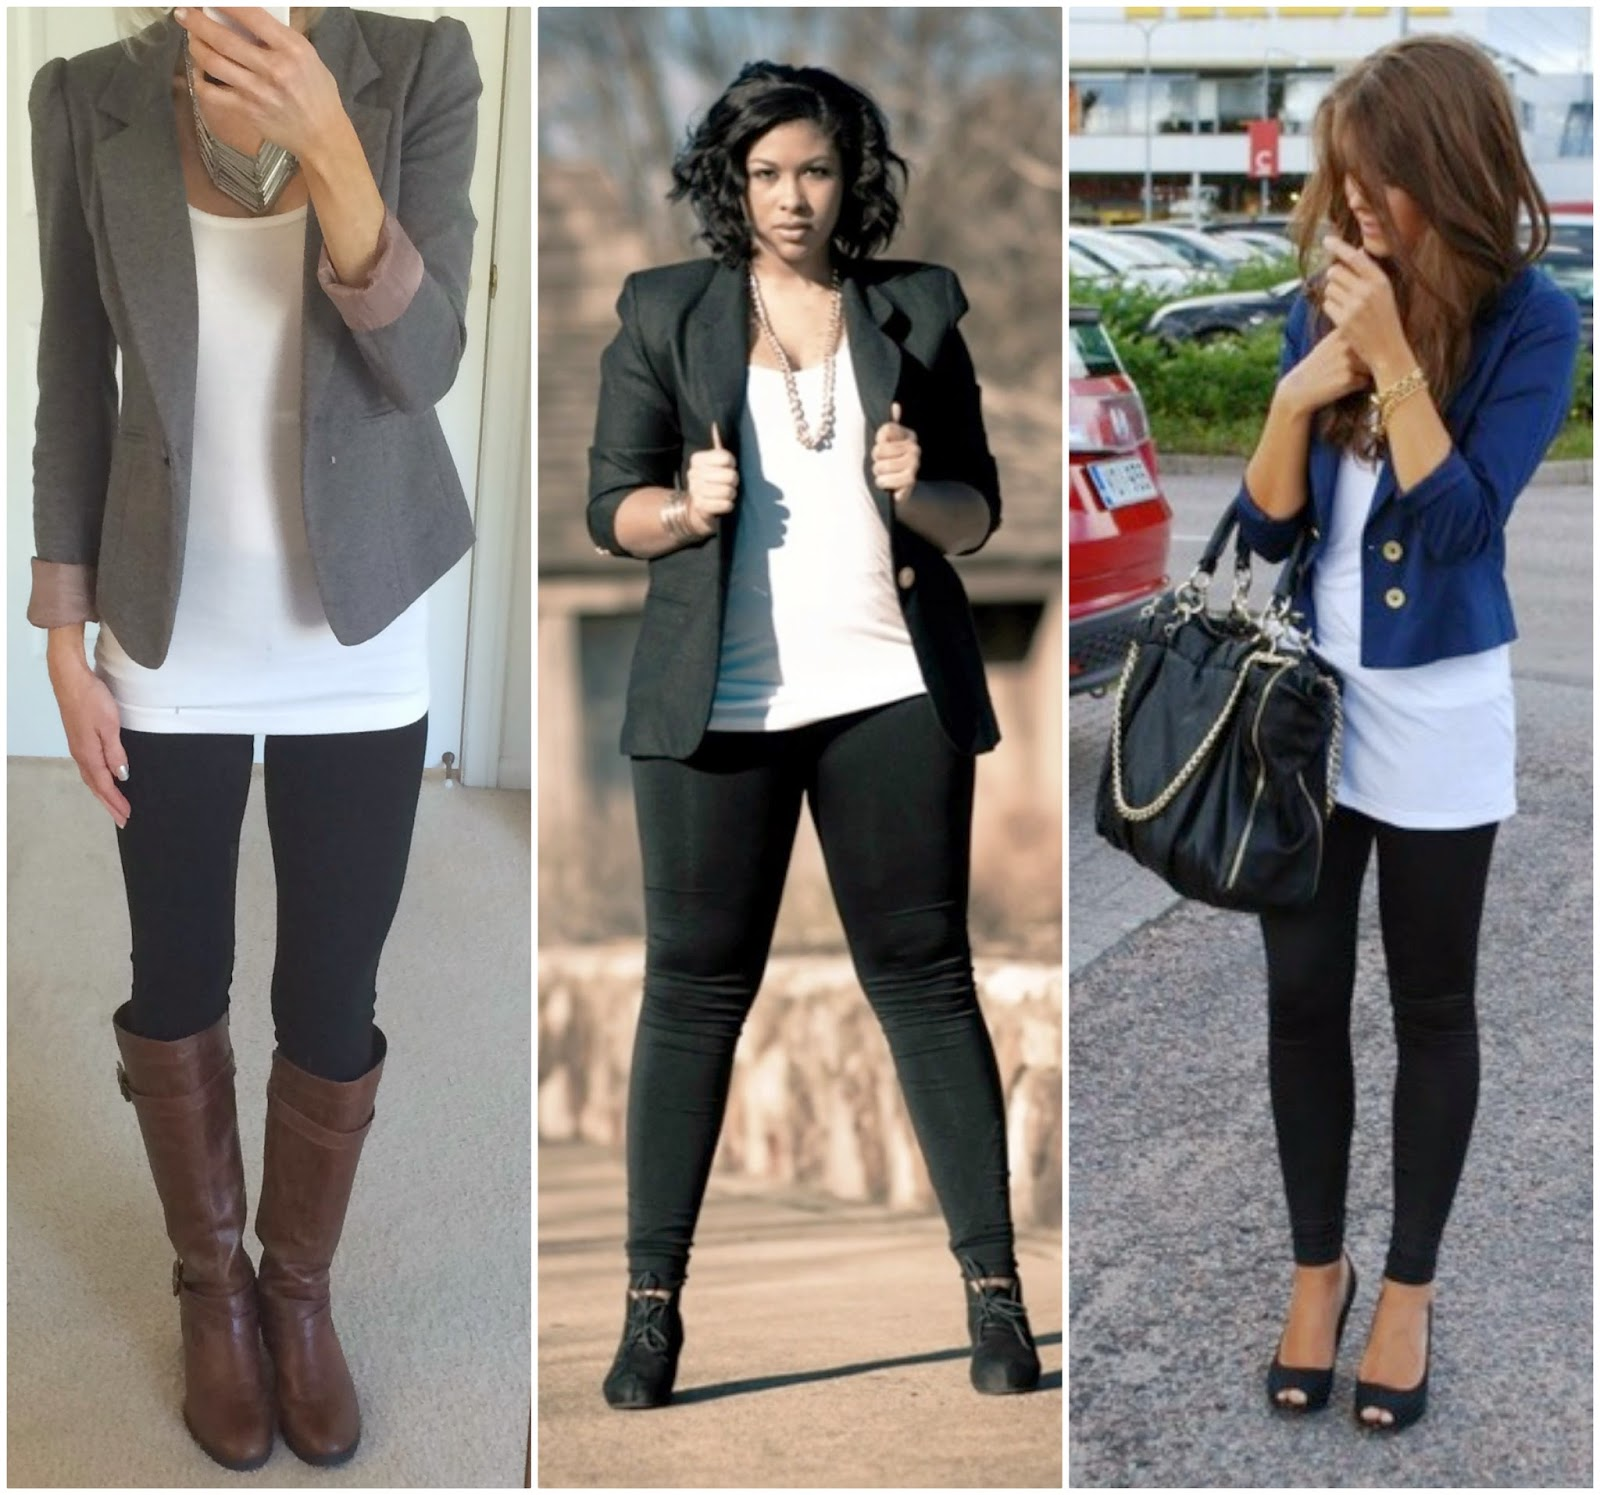 How To Get Away With Wearing Leggings At Work